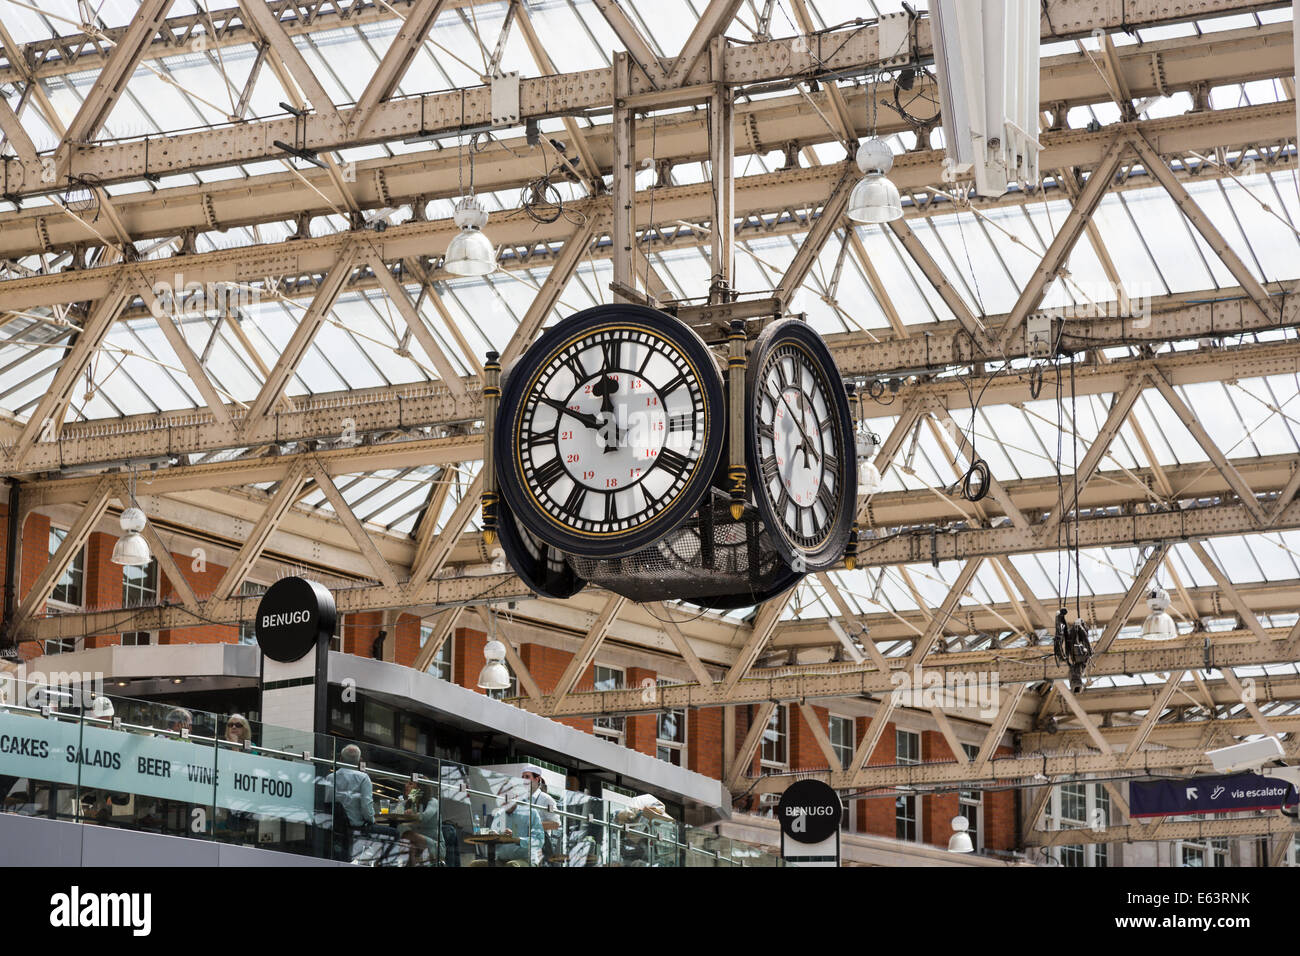 Station clock at Waterloo Station, London, a famous meeting point on the platform - Stock Image